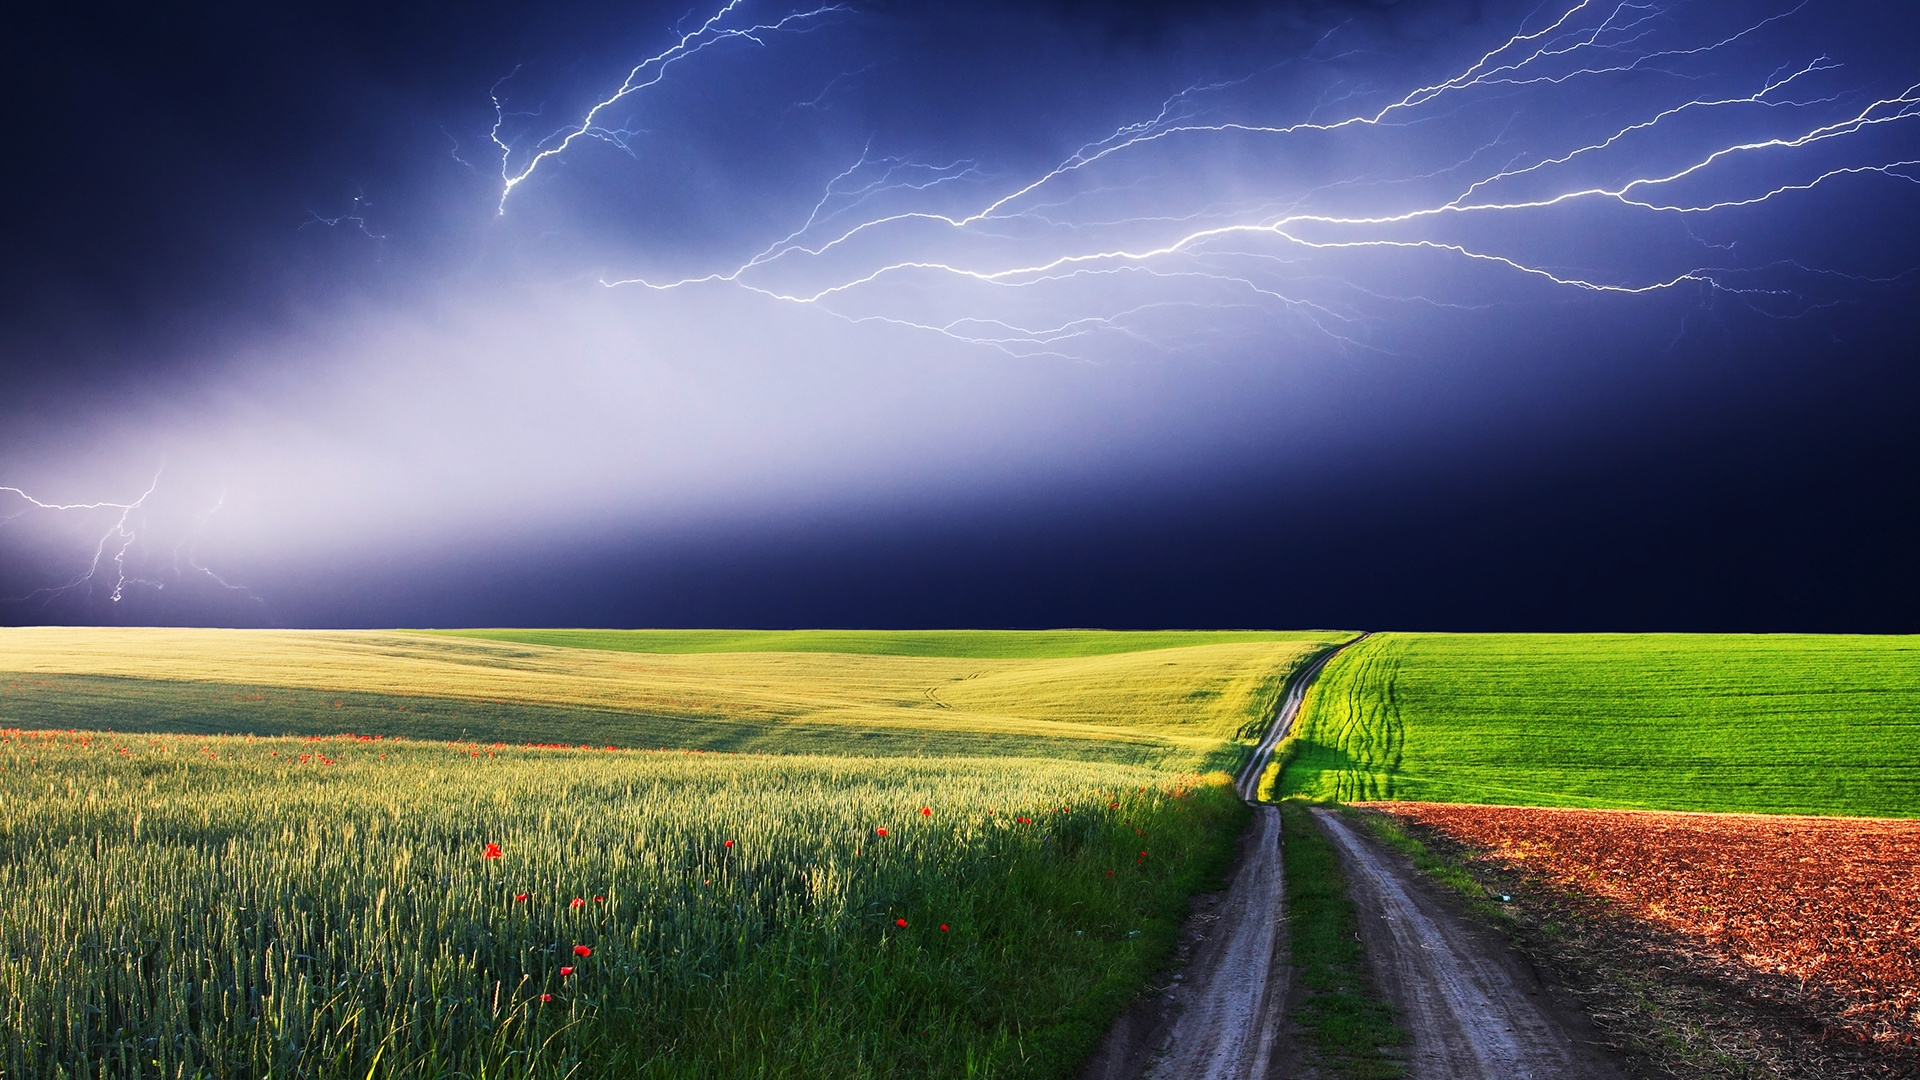 Image-result-for-bad-weather-in-nature-1920x1080p-wallpaper-wpc5806277